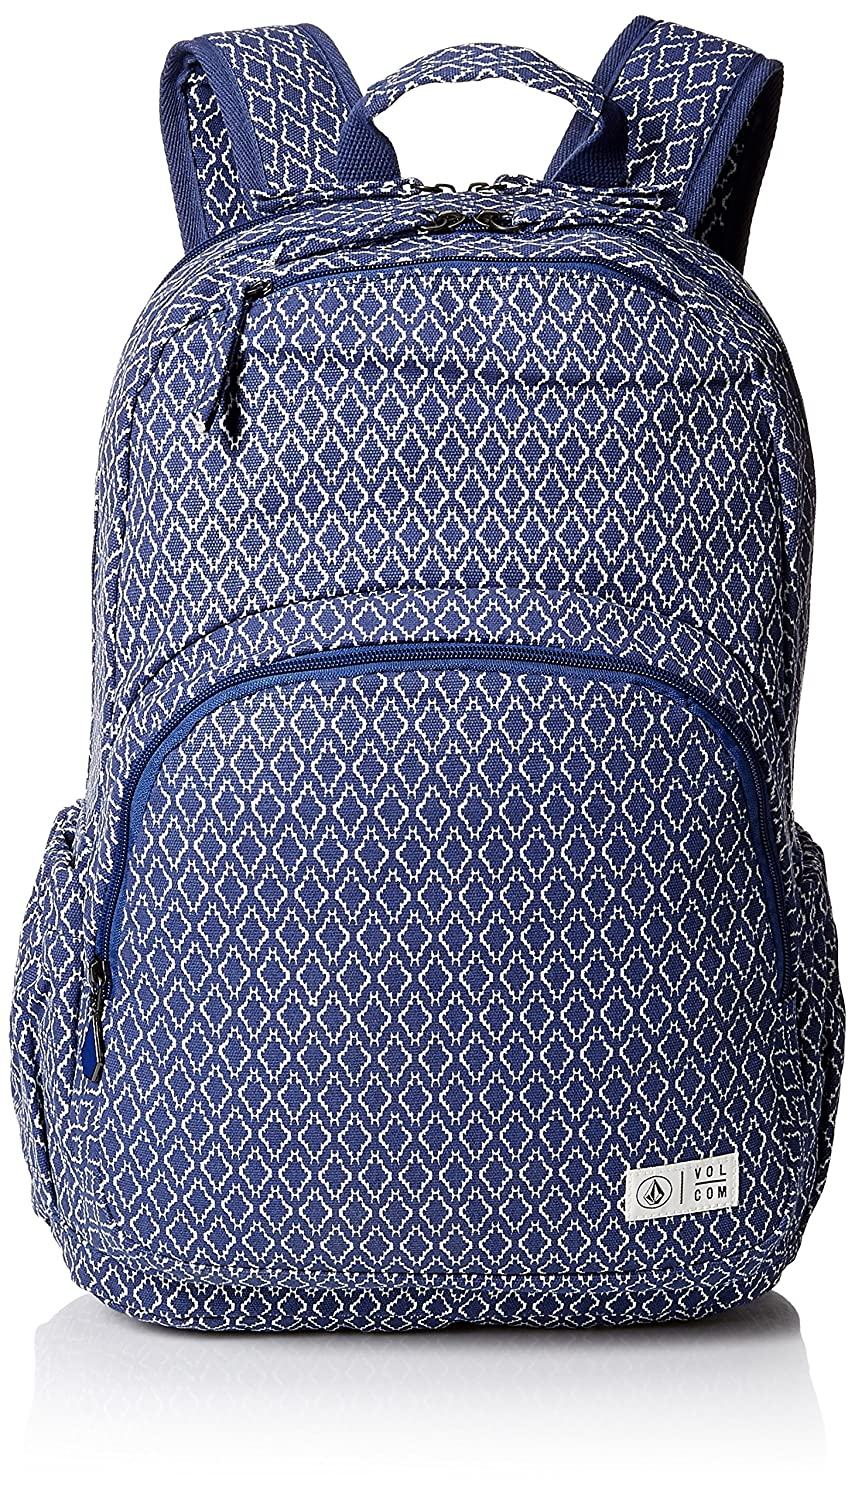 232abe493ebc Volcom Vacations Canvas Backpack- Fenix Toulouse Handball